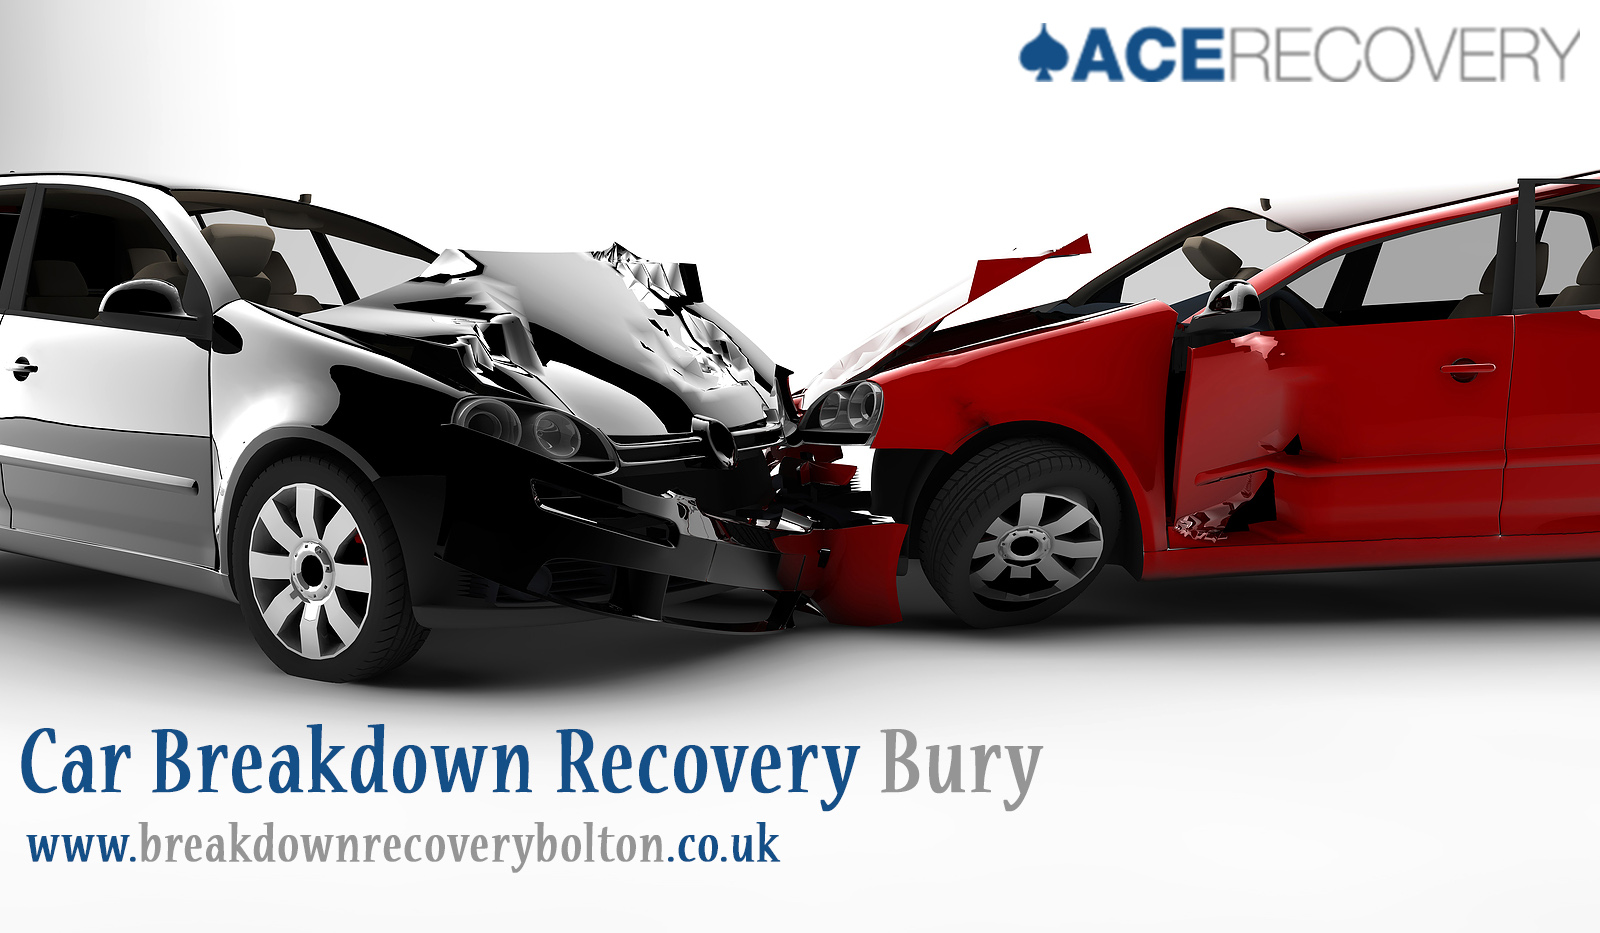 Breakdown Recovery Services Bury